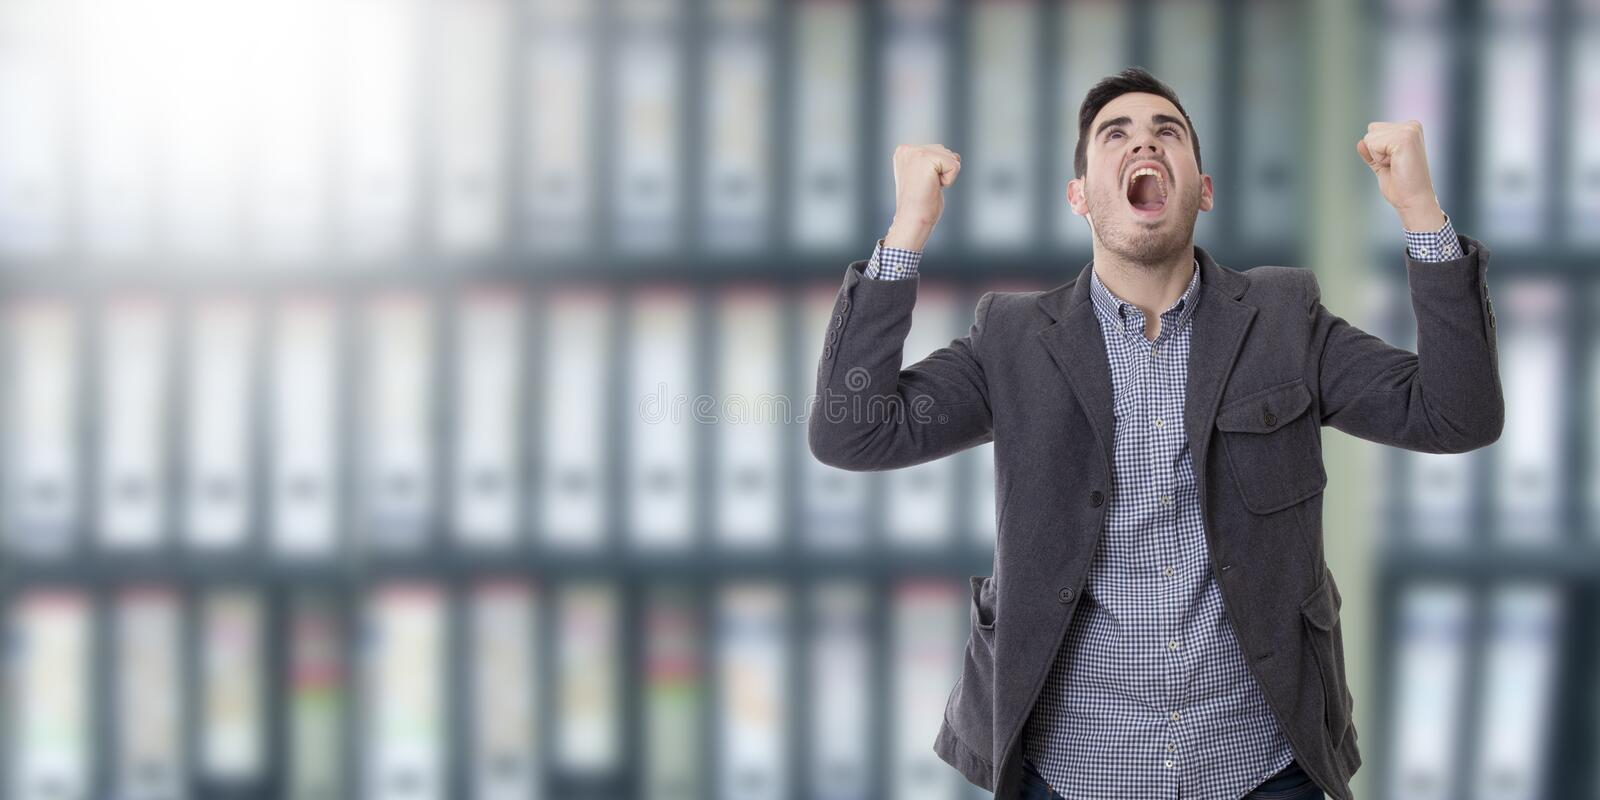 Man shouting enraged with the arms raised. Adult young man shouting enraged with the arms raised royalty free stock photo